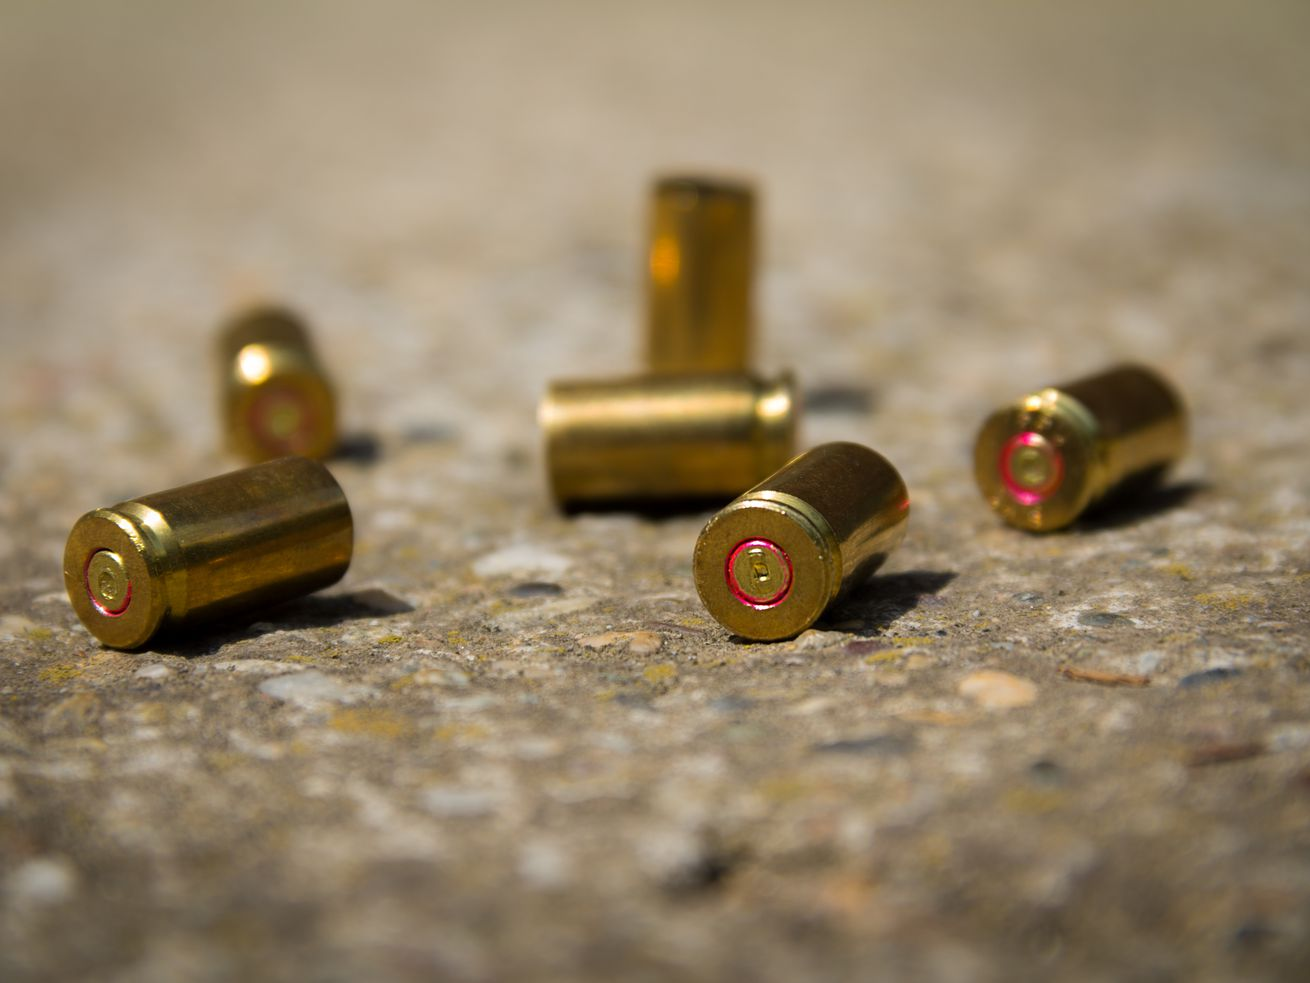 2 wounded in Lawndale shooting